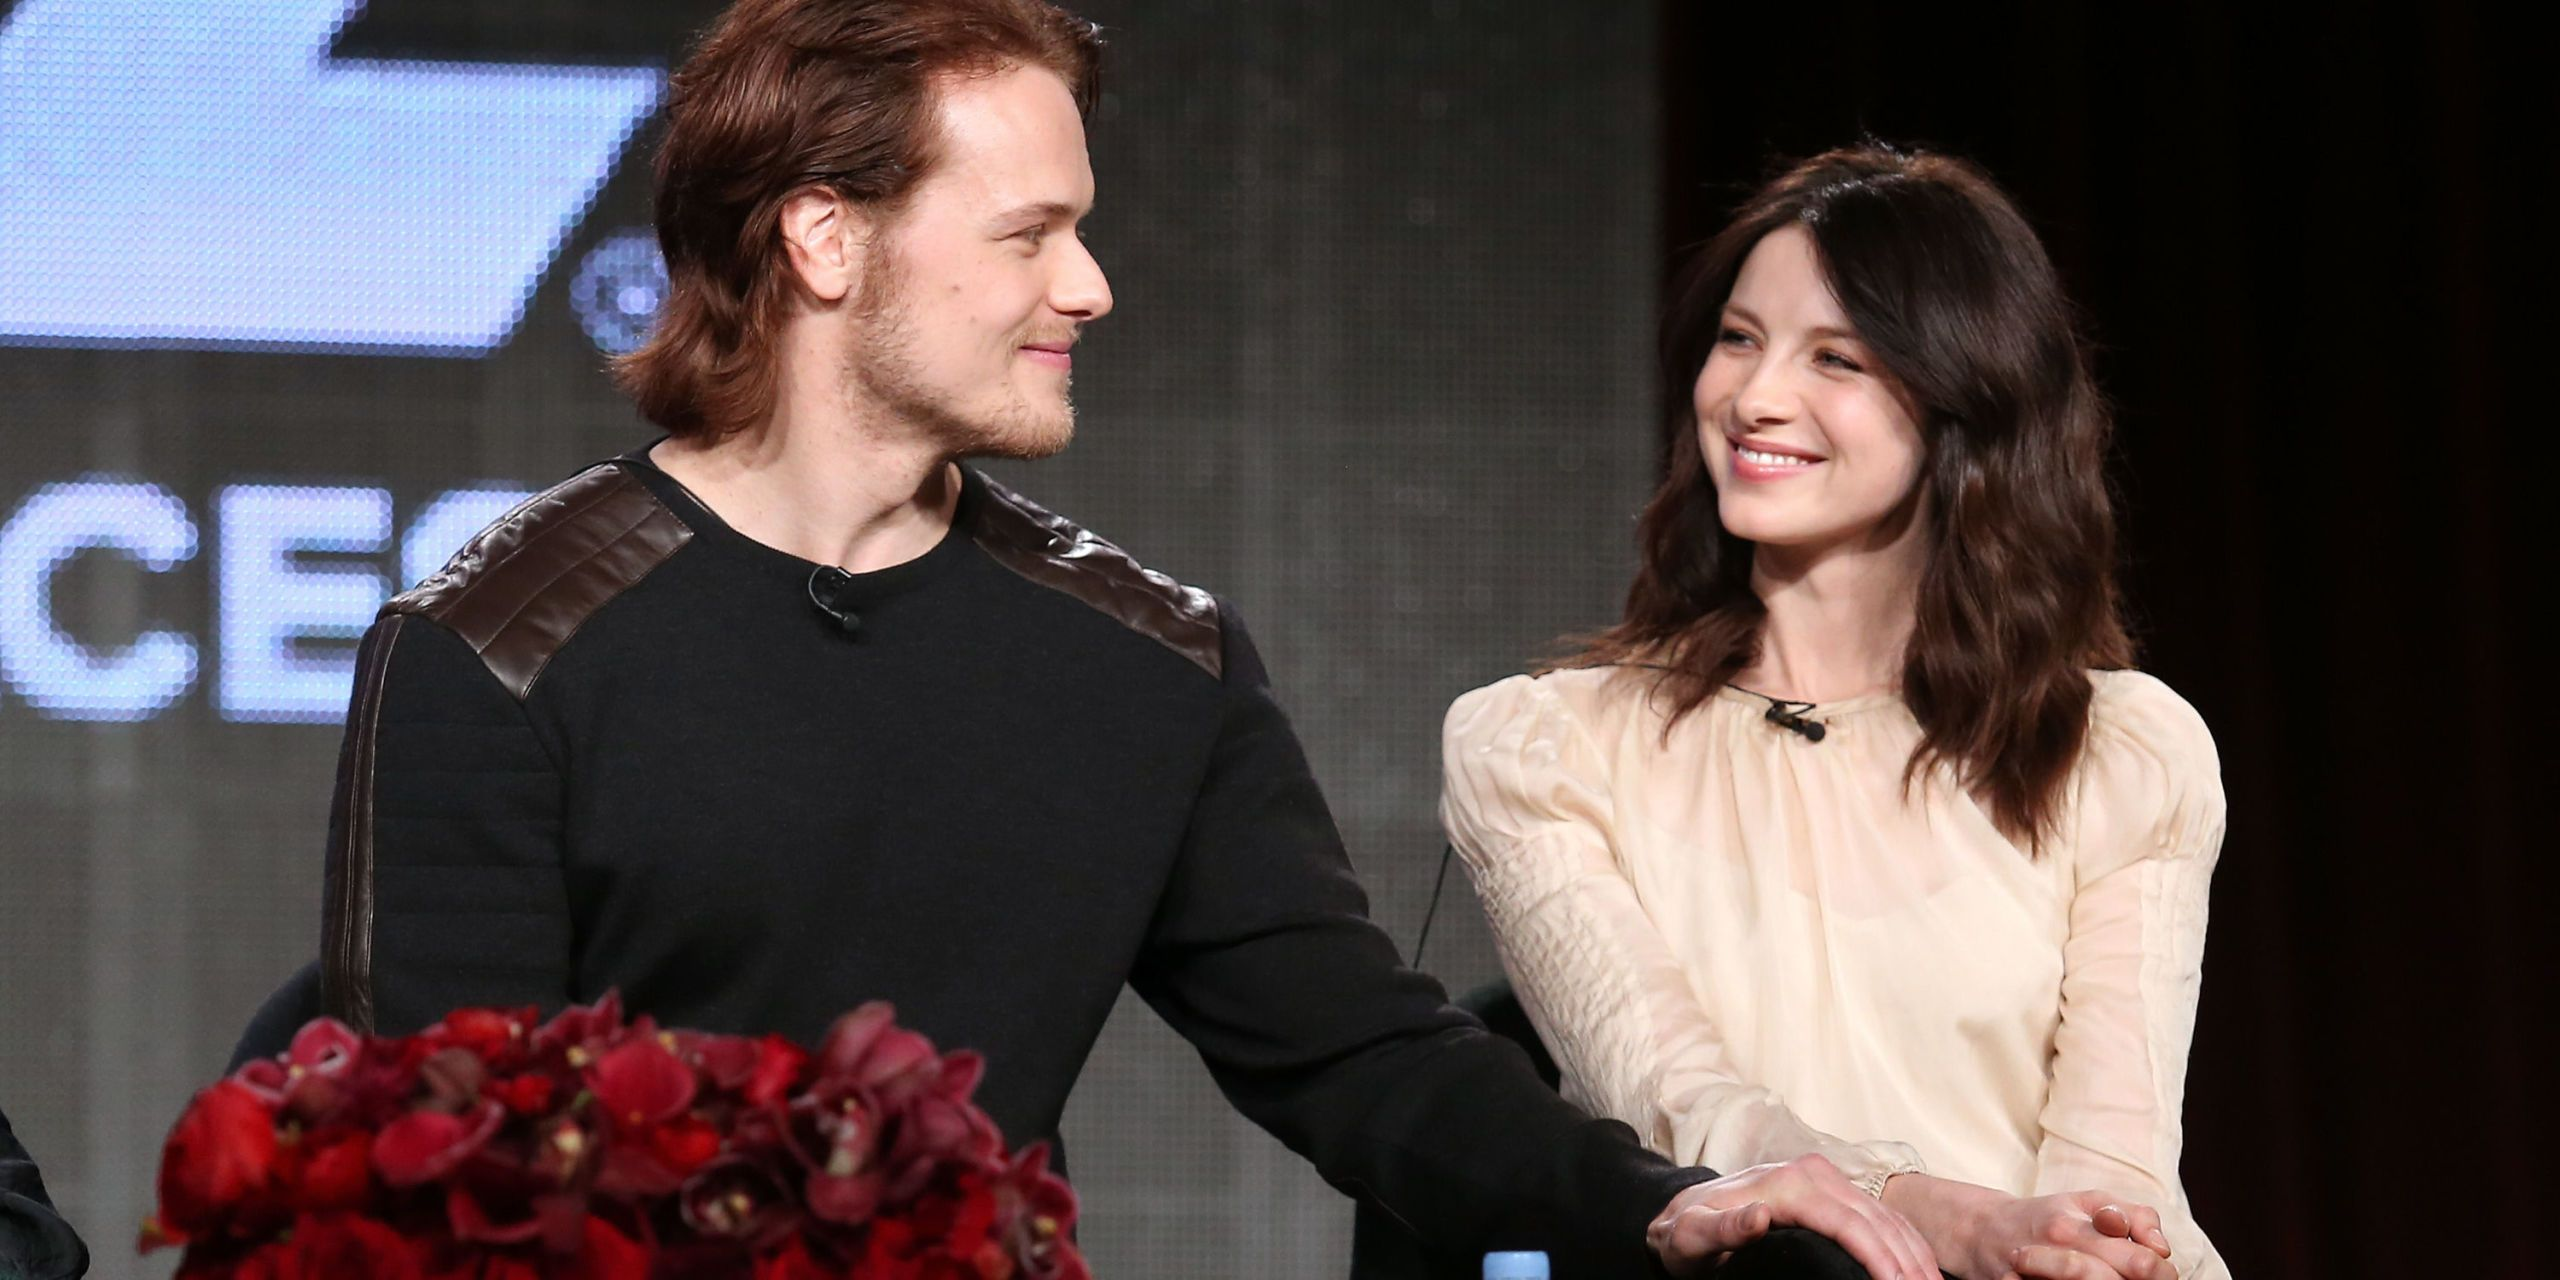 Sam heughan dating his costar